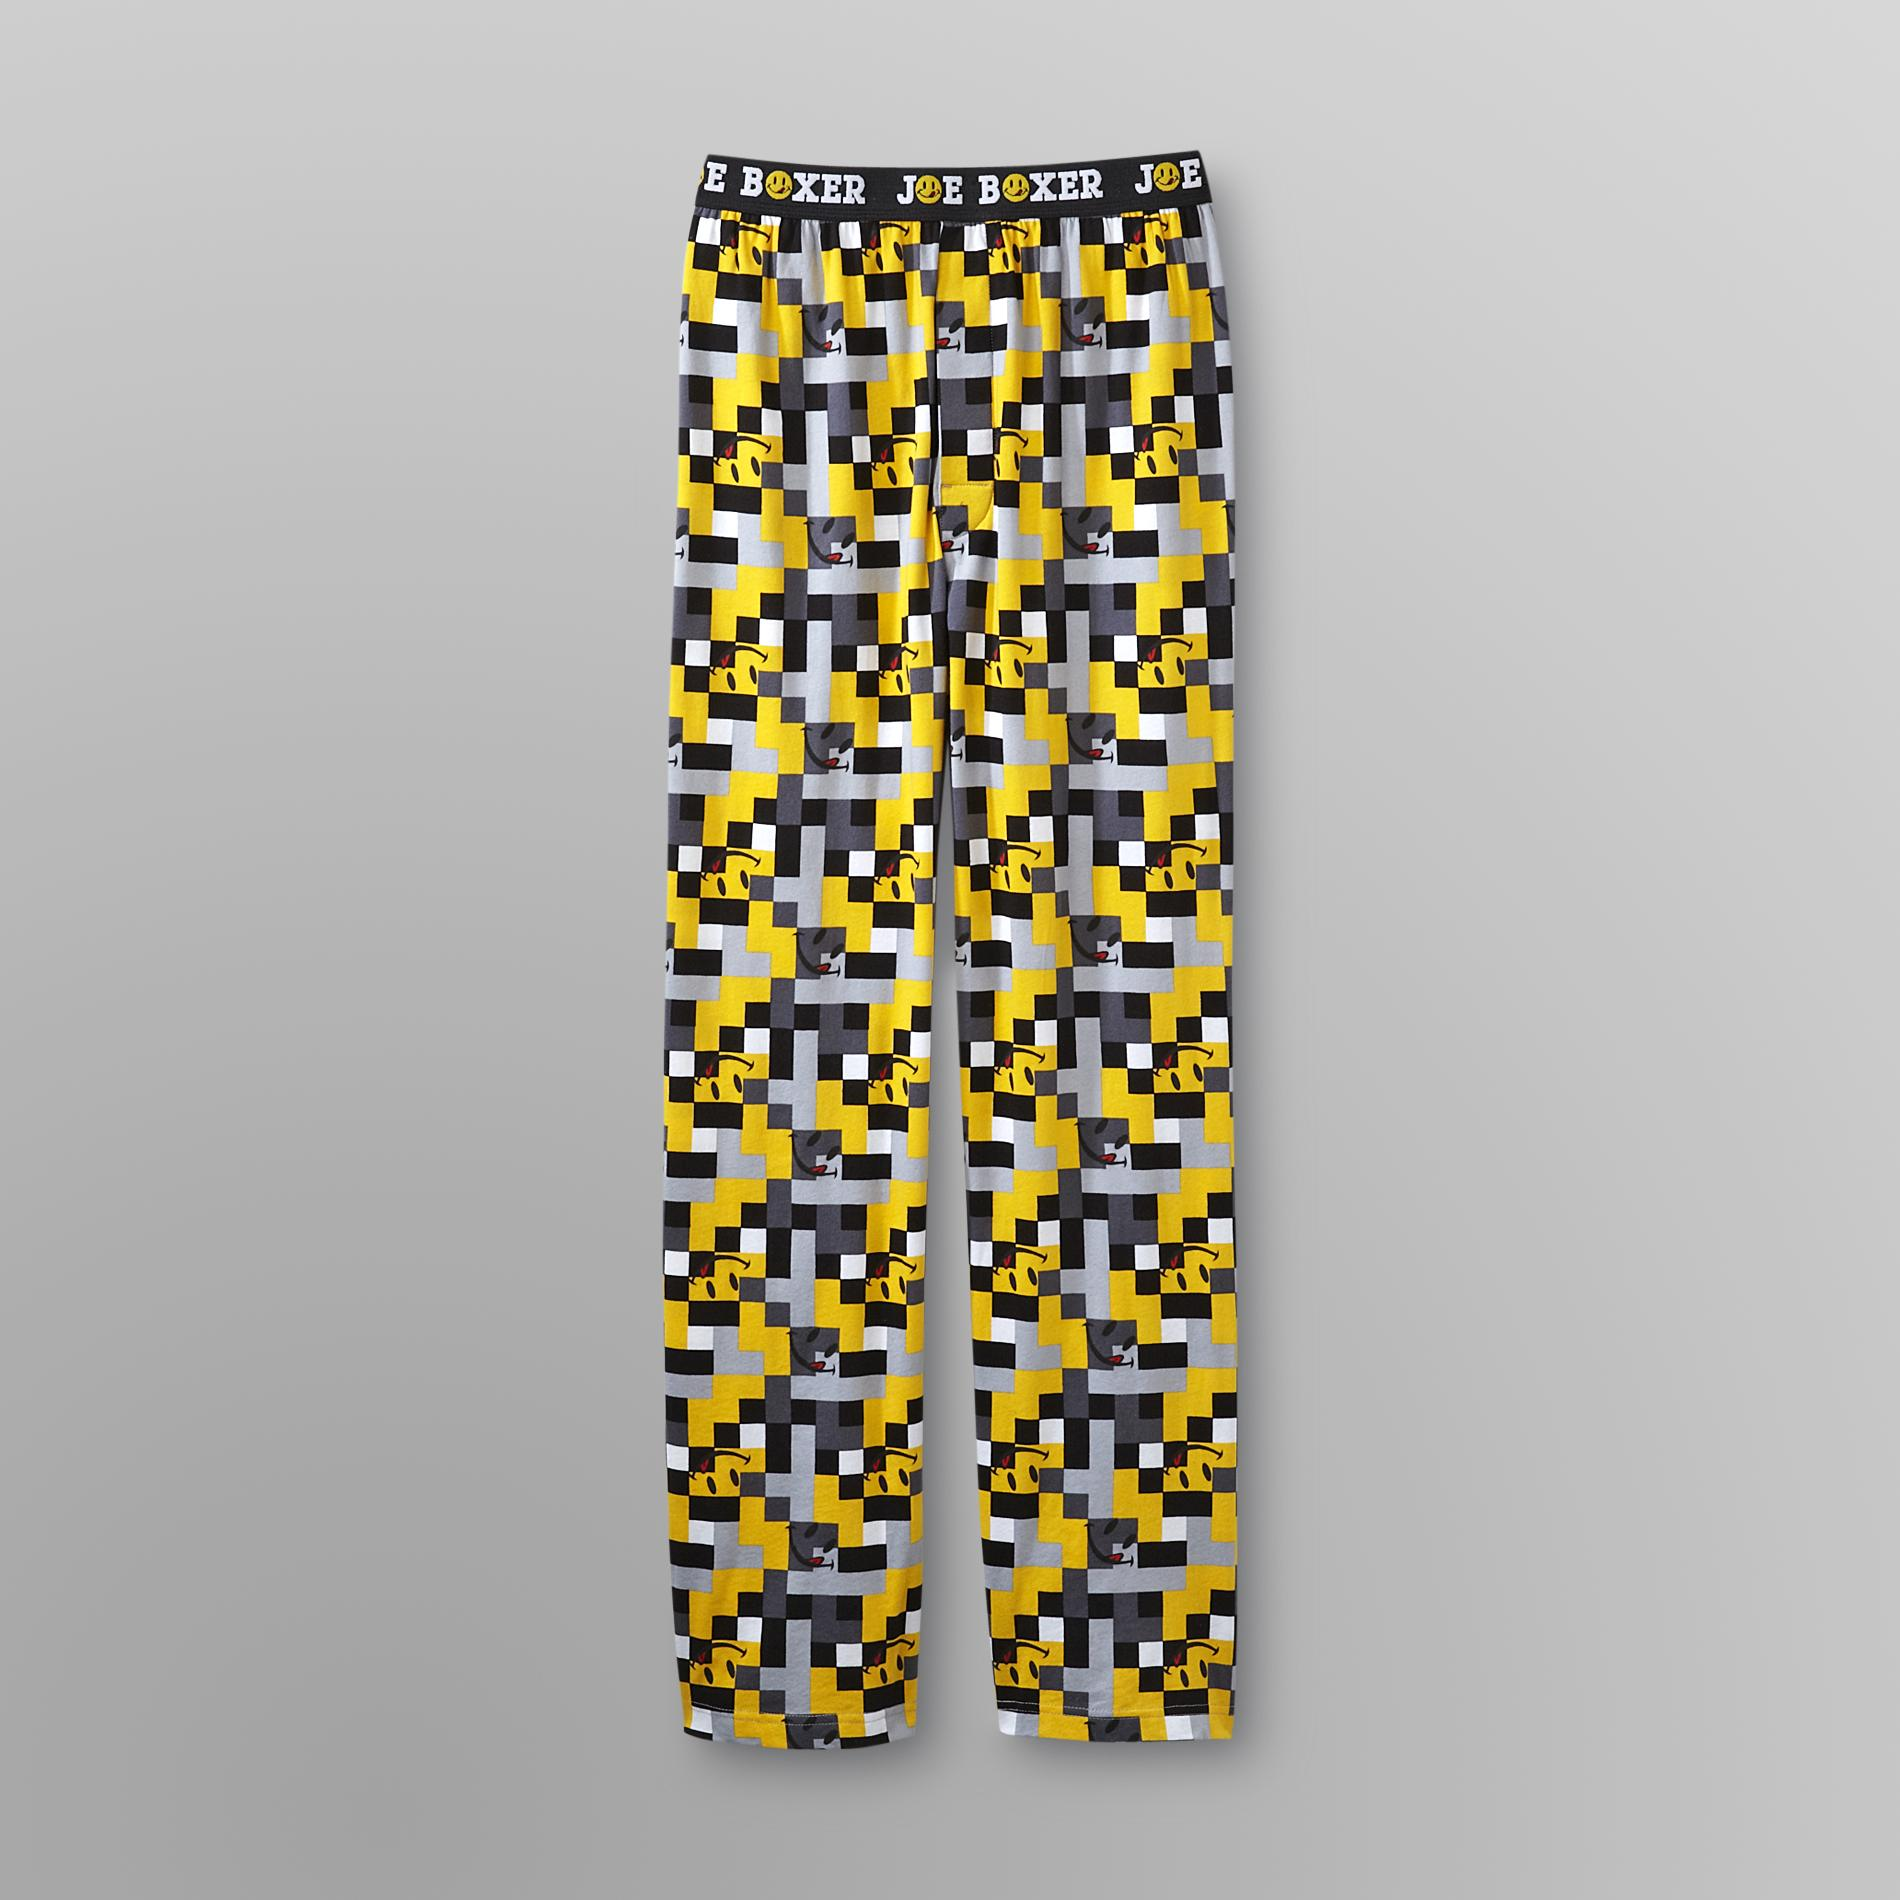 Joe Boxer Men's Knit Lounge Pants - Digital Licky at Kmart.com